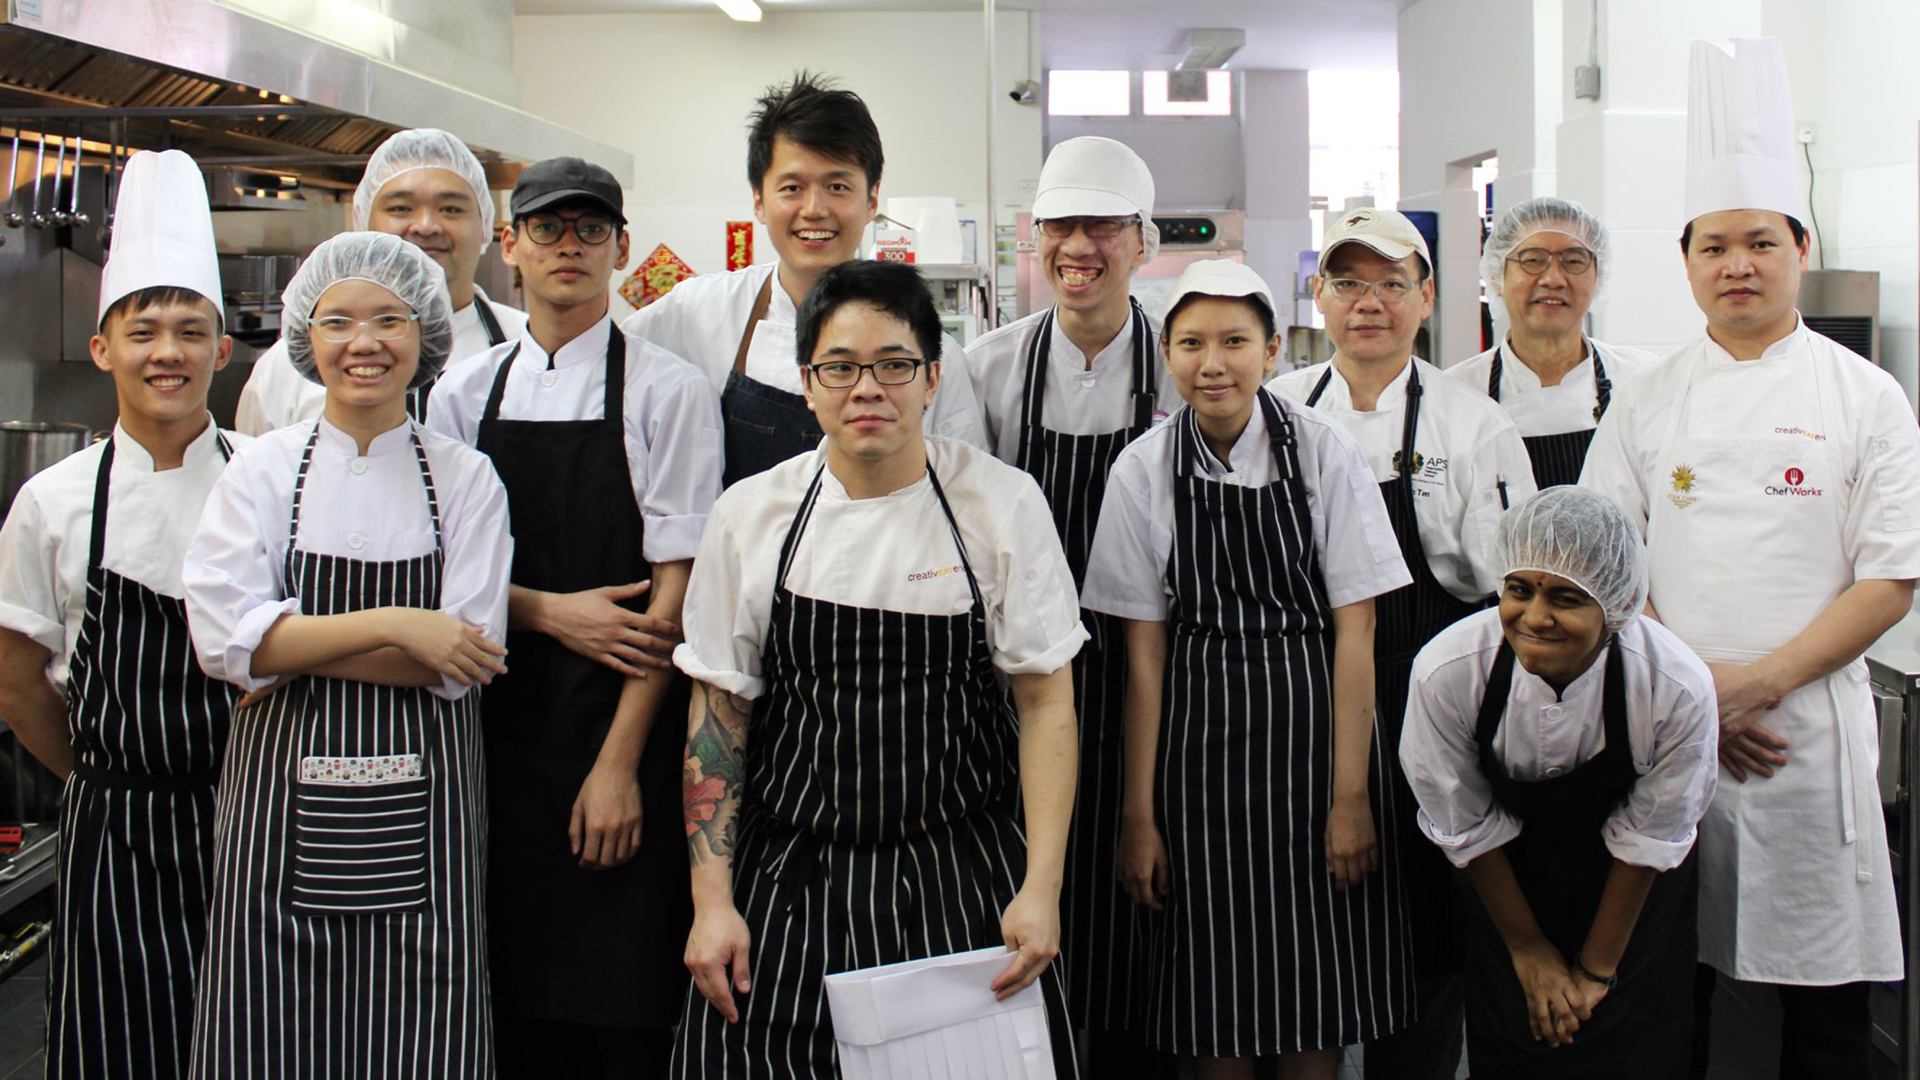 Chef Immanuel Tee (the tallest one in the back) with culinary students of Assumption Pathway School.